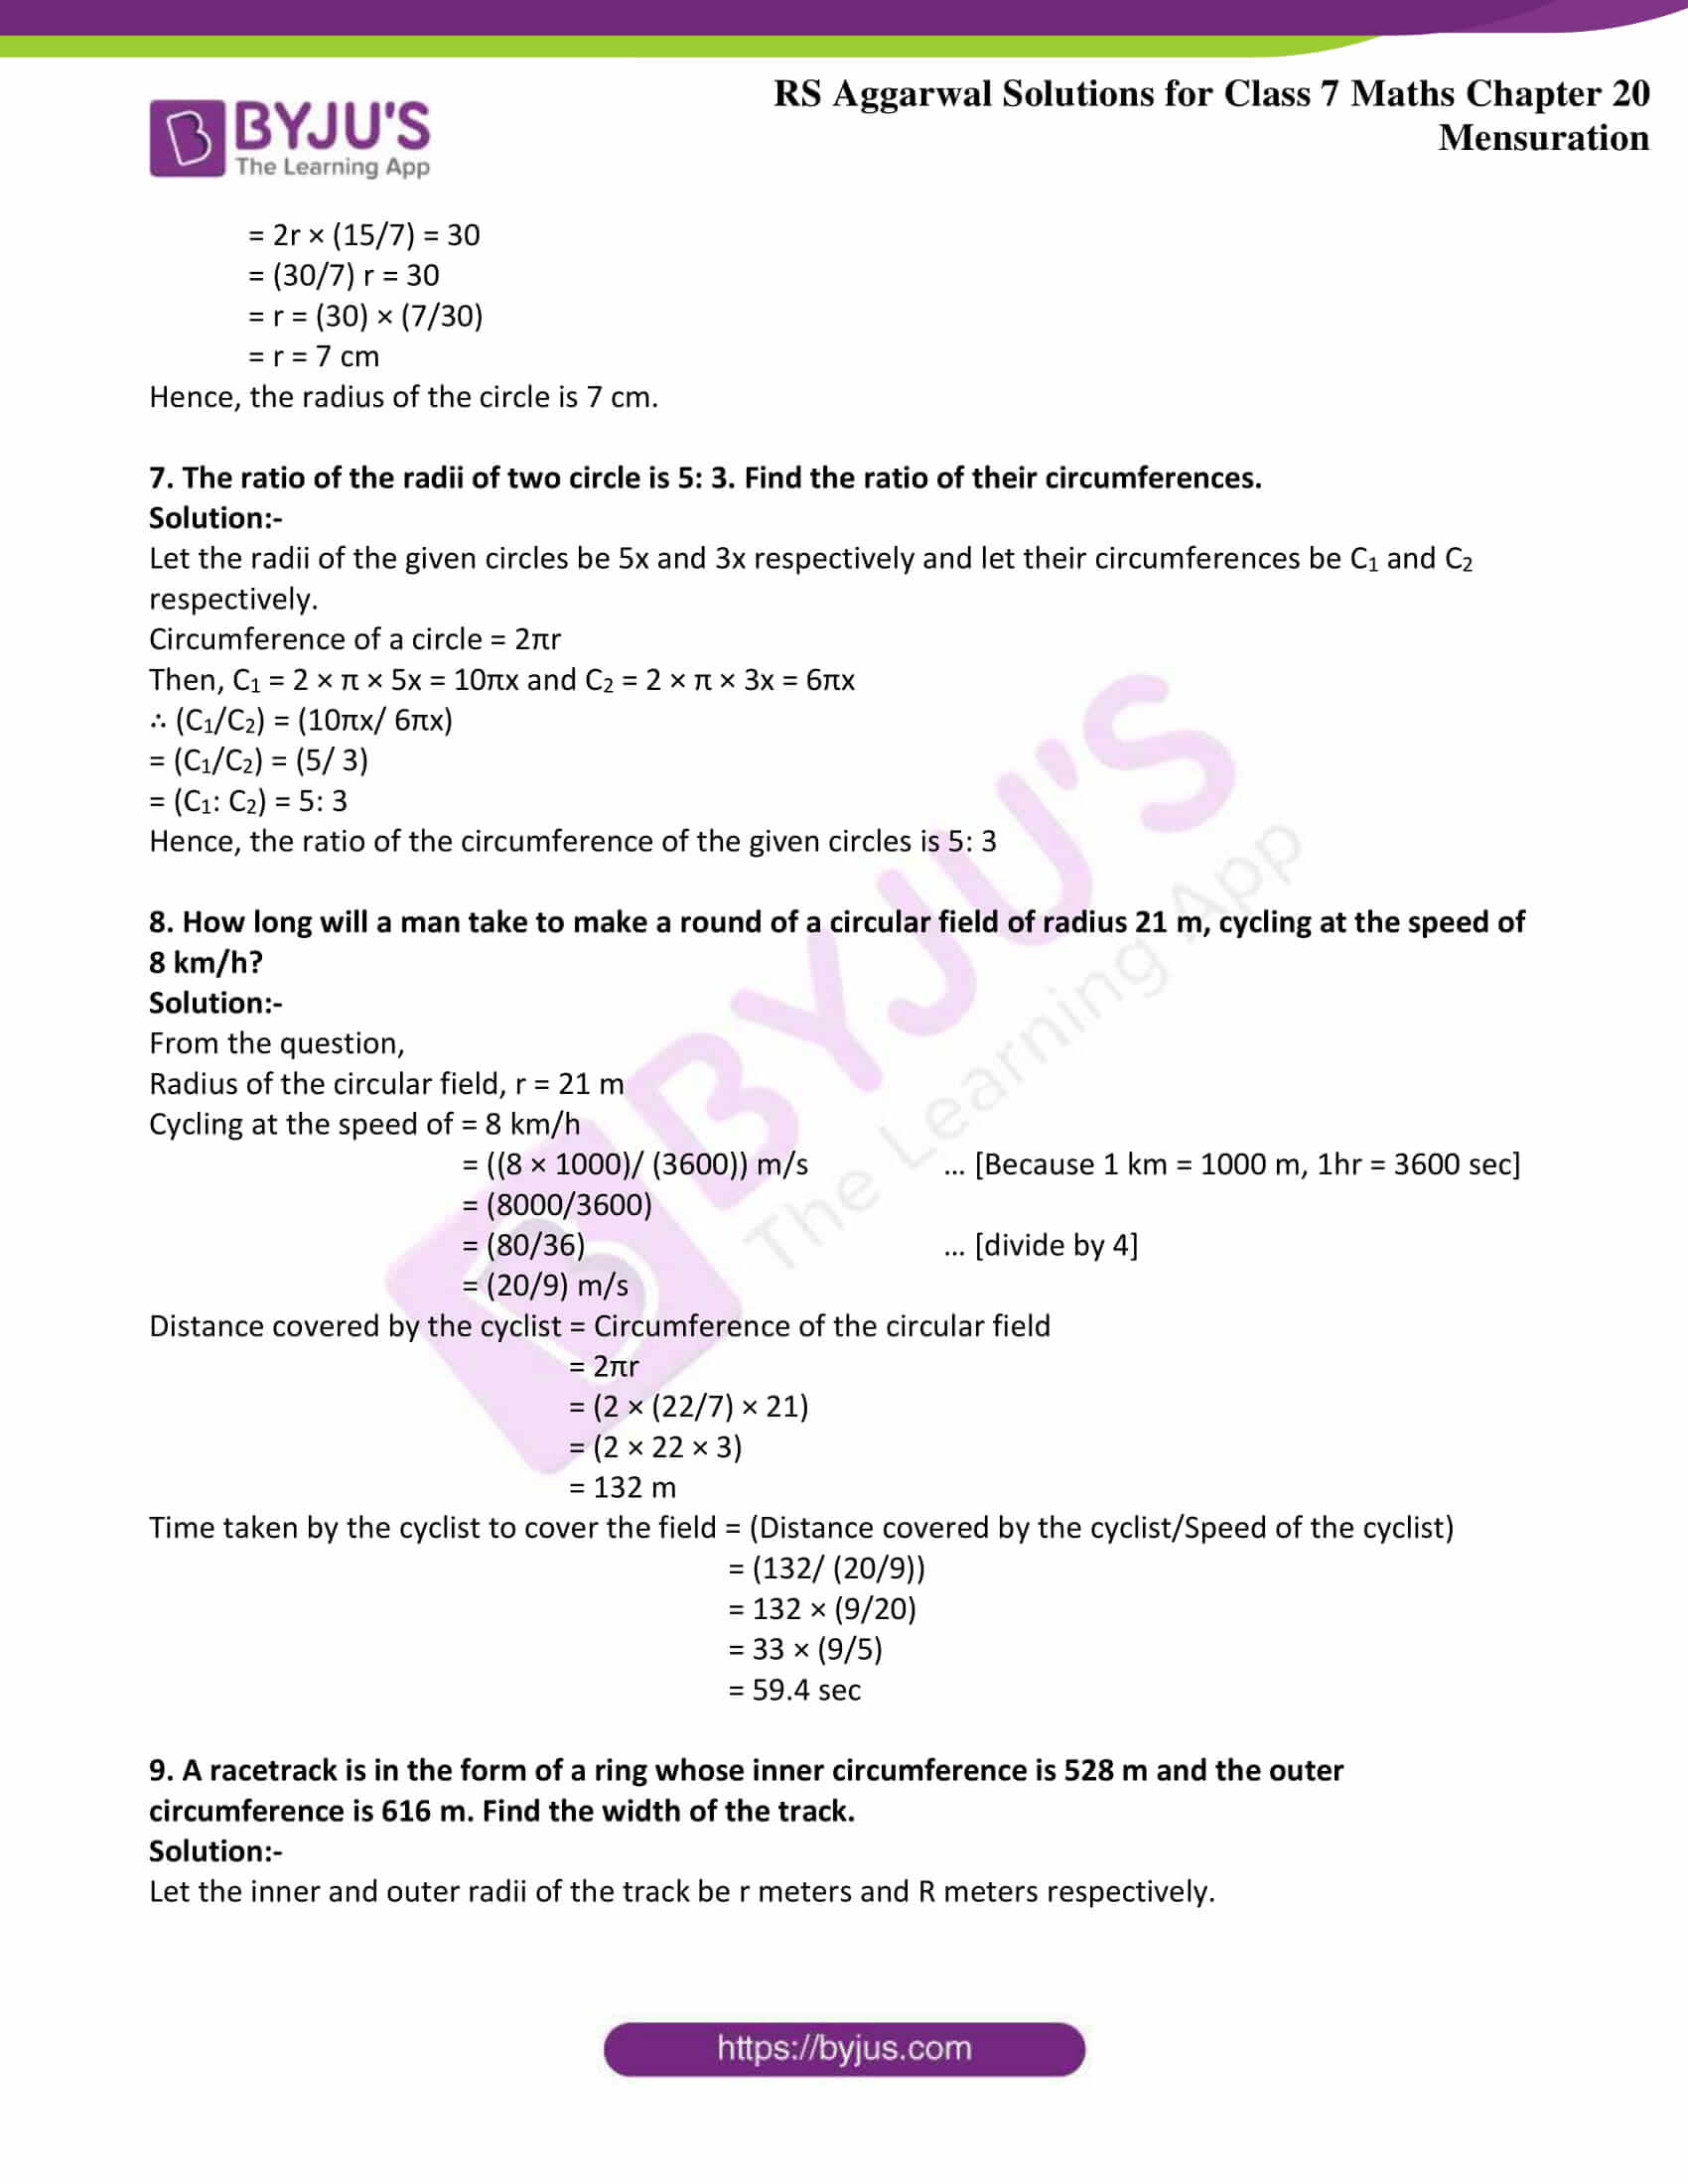 rs aggarwal solution class 7 maths chapter Exercise 20E